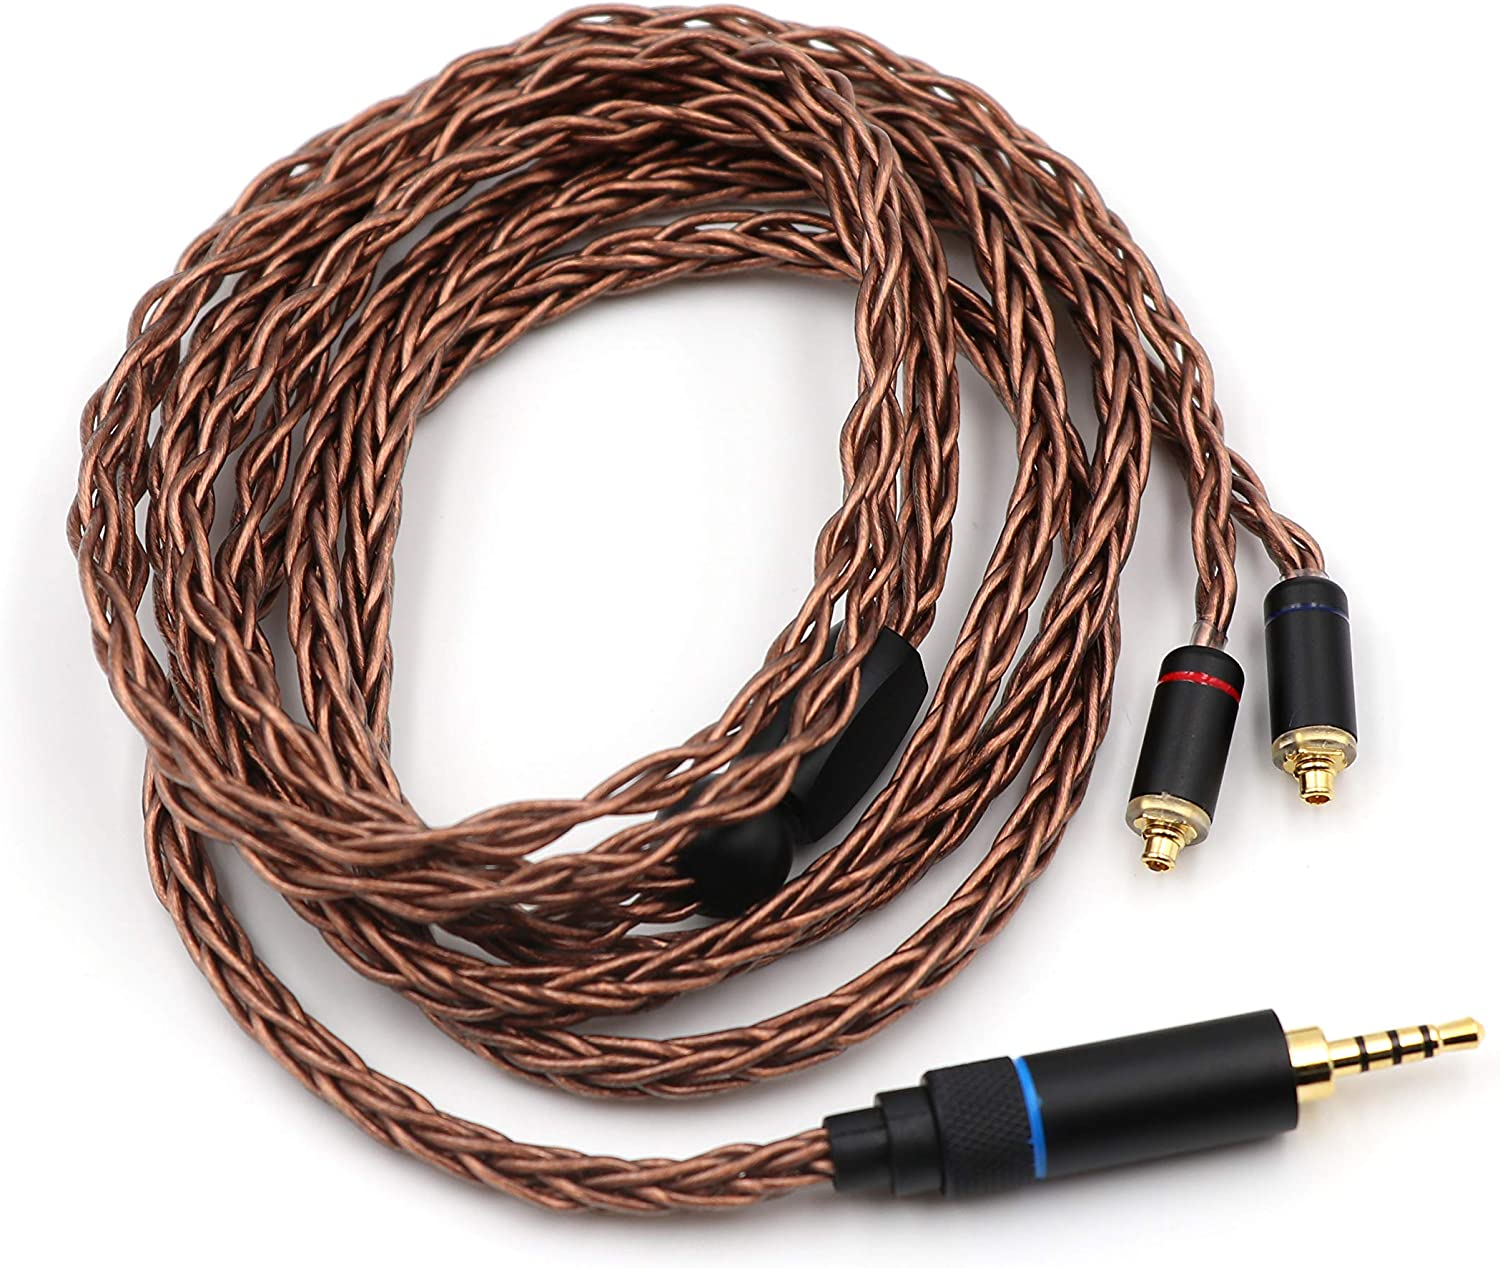 2.5mm Plug, MMCX Linsoul HC-08 HiFi OCC 8 Strands 19 Core Braided Earphone Cable for Audiophile IEM Earbud